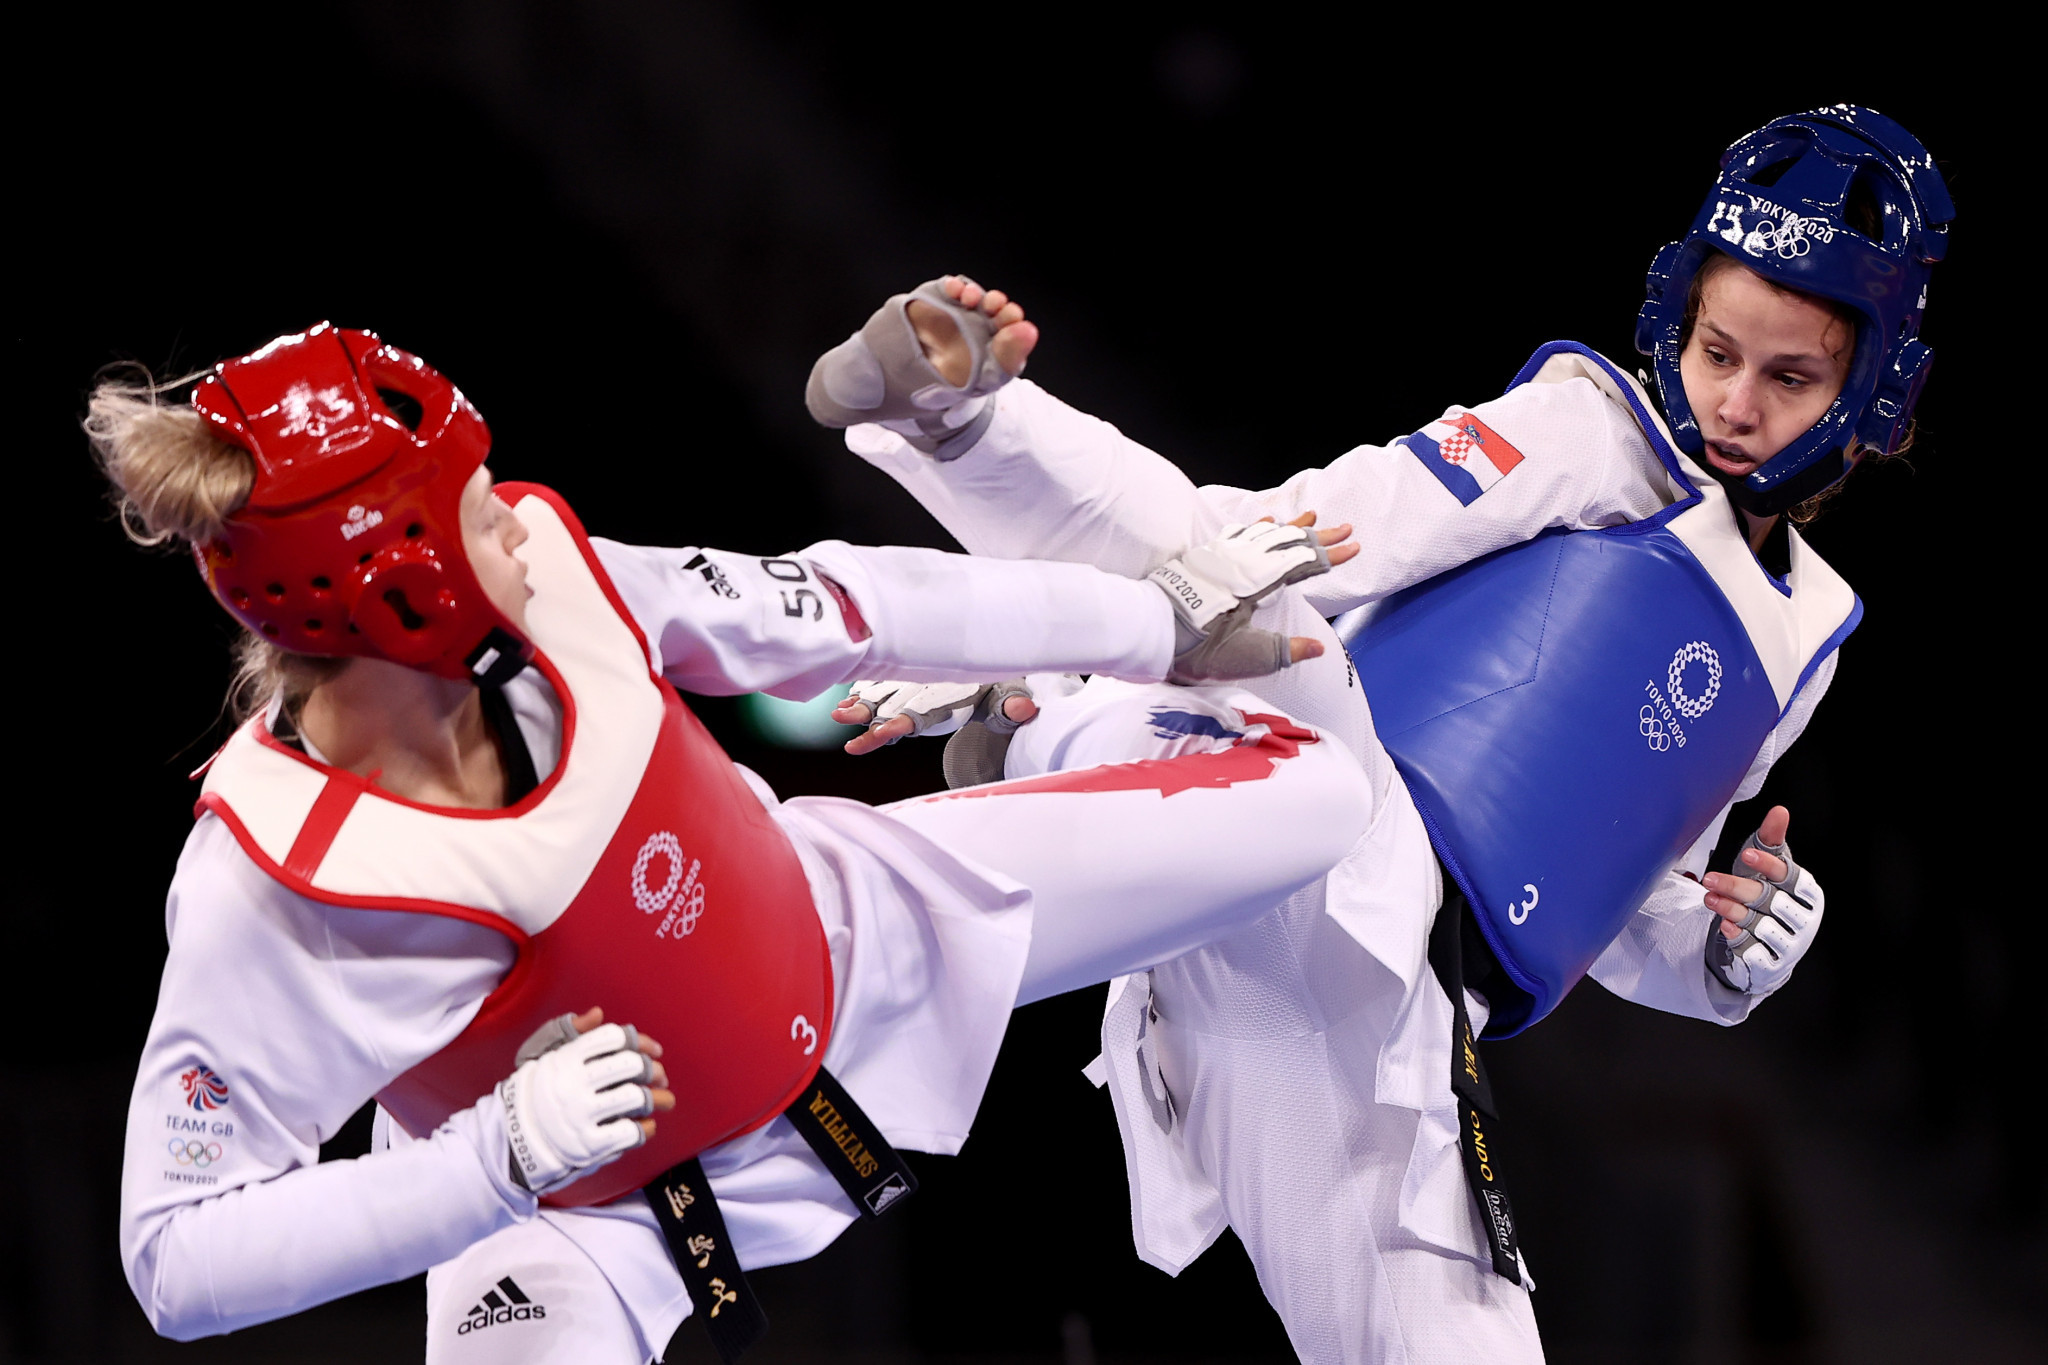 Croatia's Matea Jelić, right, snatched victory from the jaws of defeat in the women's under-67kg taekwondo final, overcoming a three-point deficit with 10 seconds remaining to win Croatia's first gold medal of the Games ©Getty Images